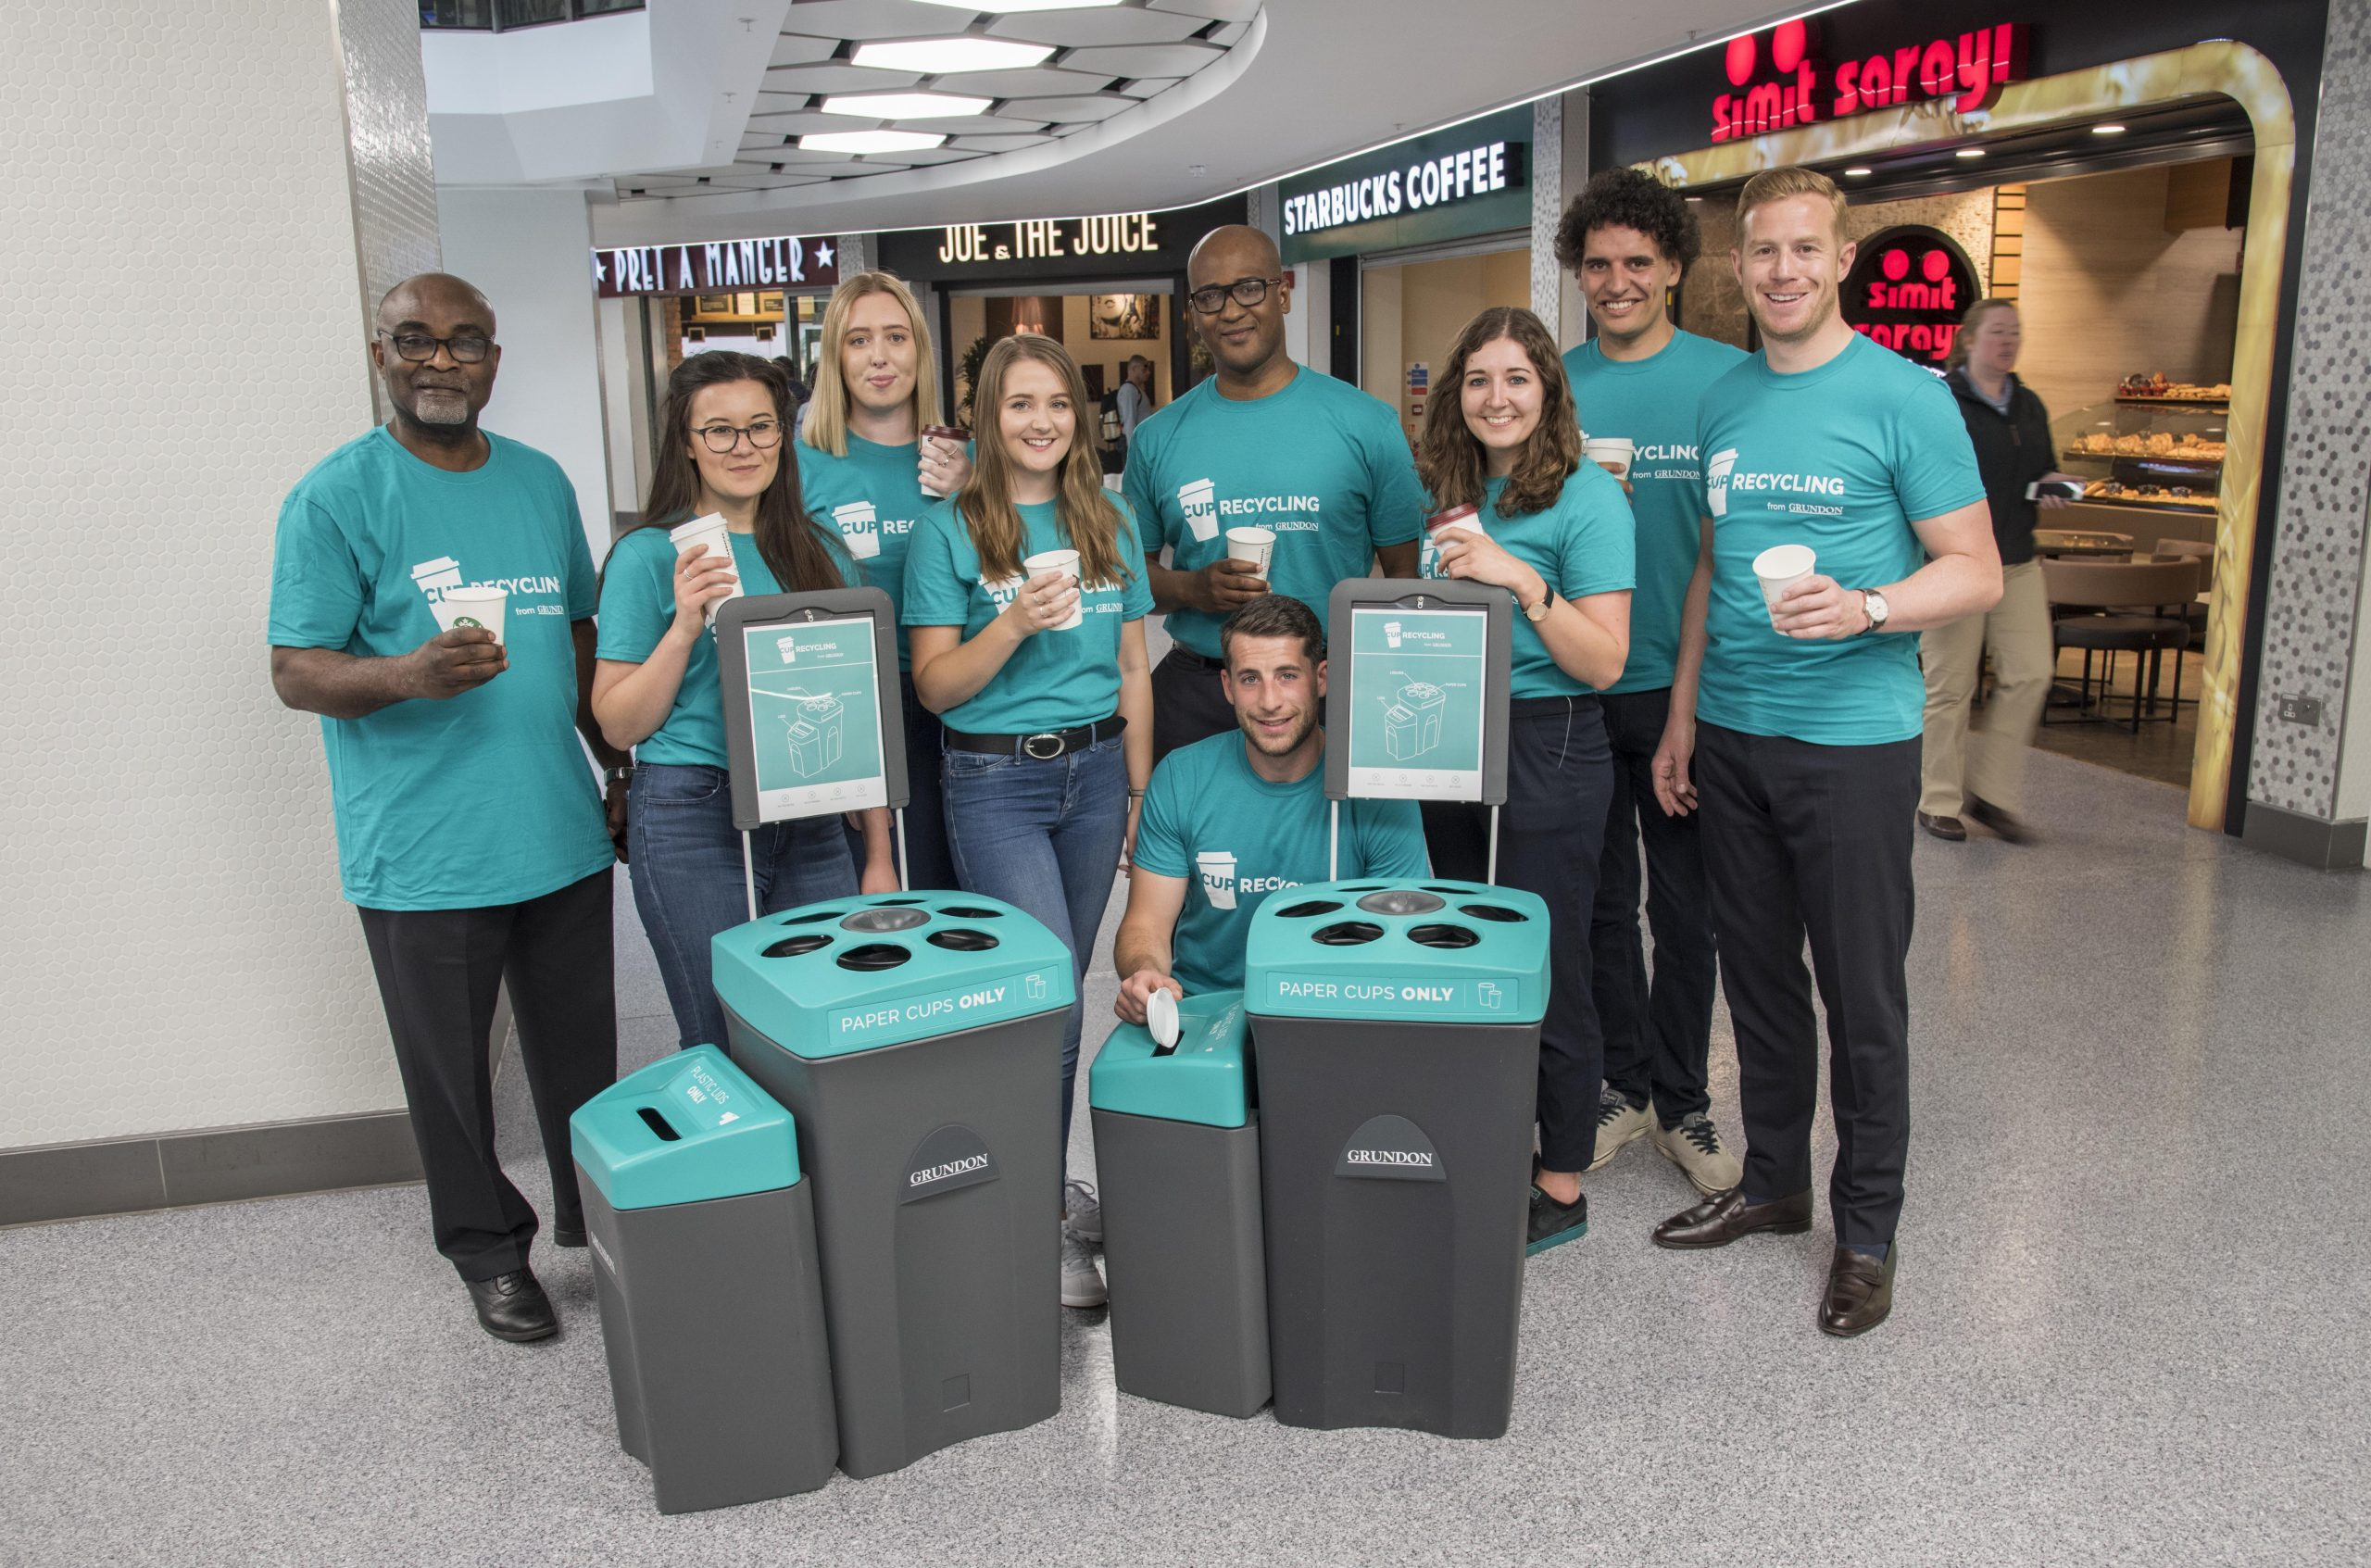 Grundon joined the West One team to launch the new cup recycling service at the shopping centre